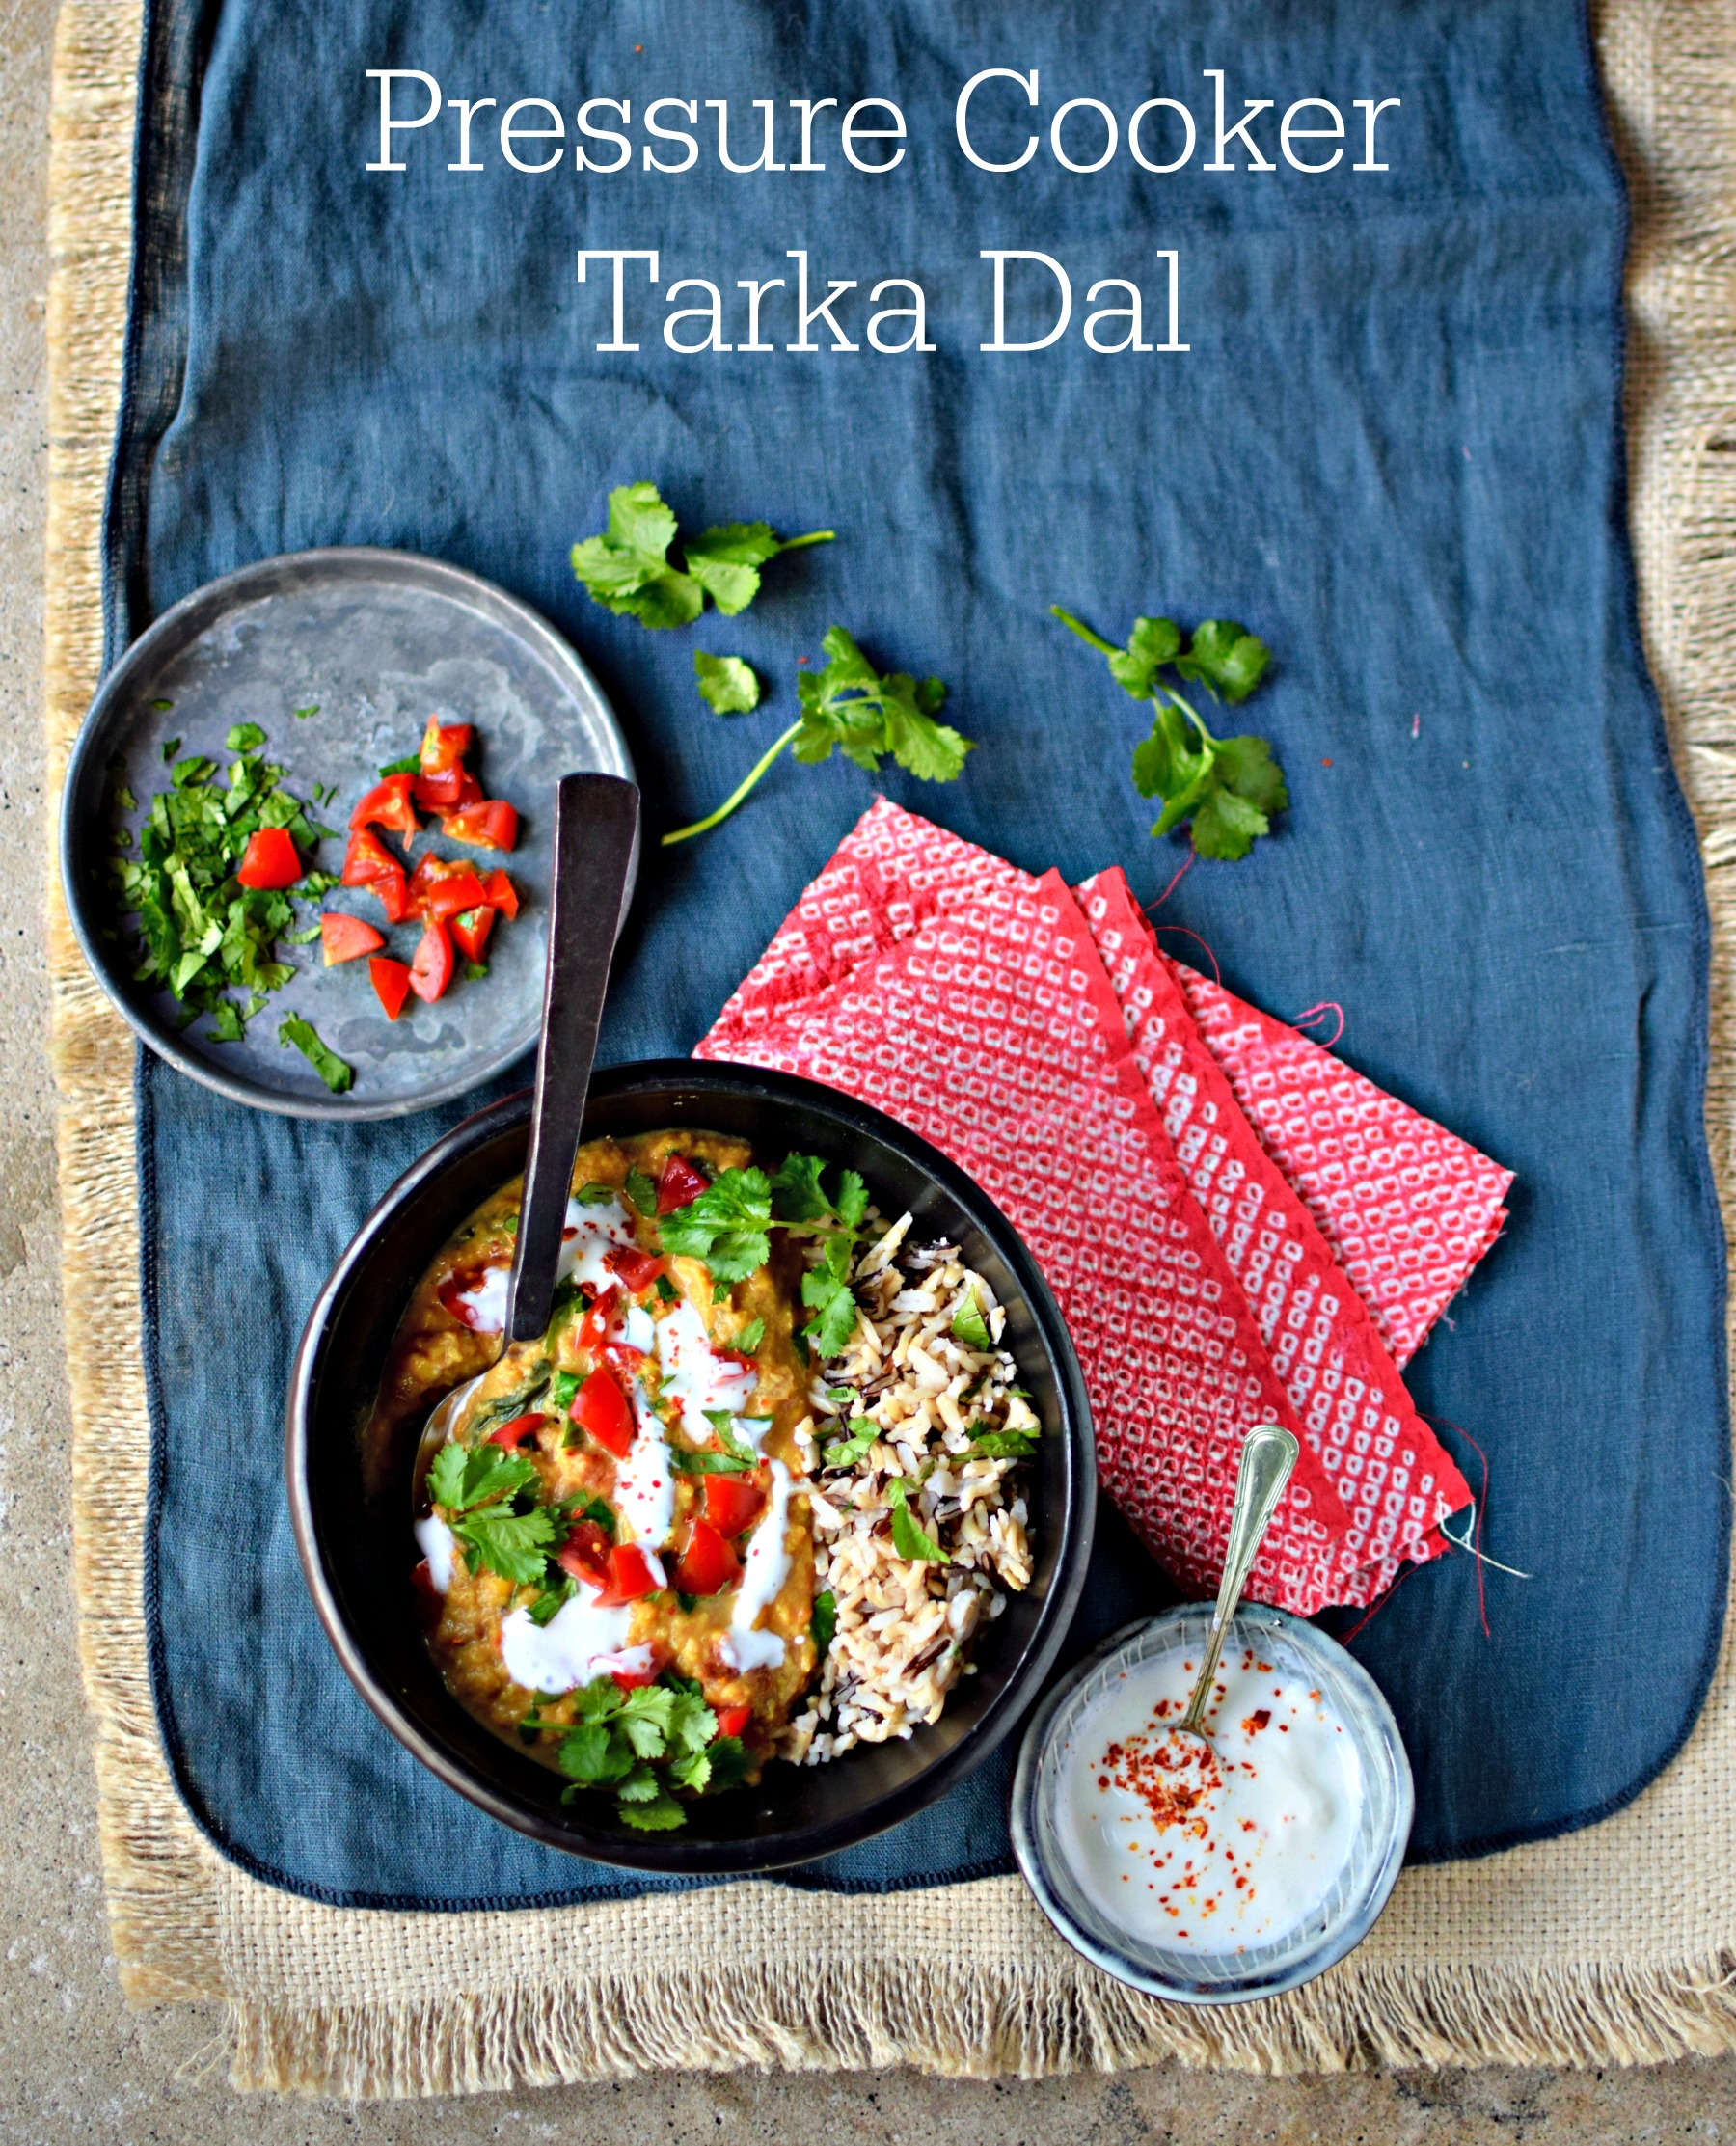 How to make creamy tarka dal in your pressure cooker food to glow if you are craving dal but time is tight use your pressure cooker to make forumfinder Gallery